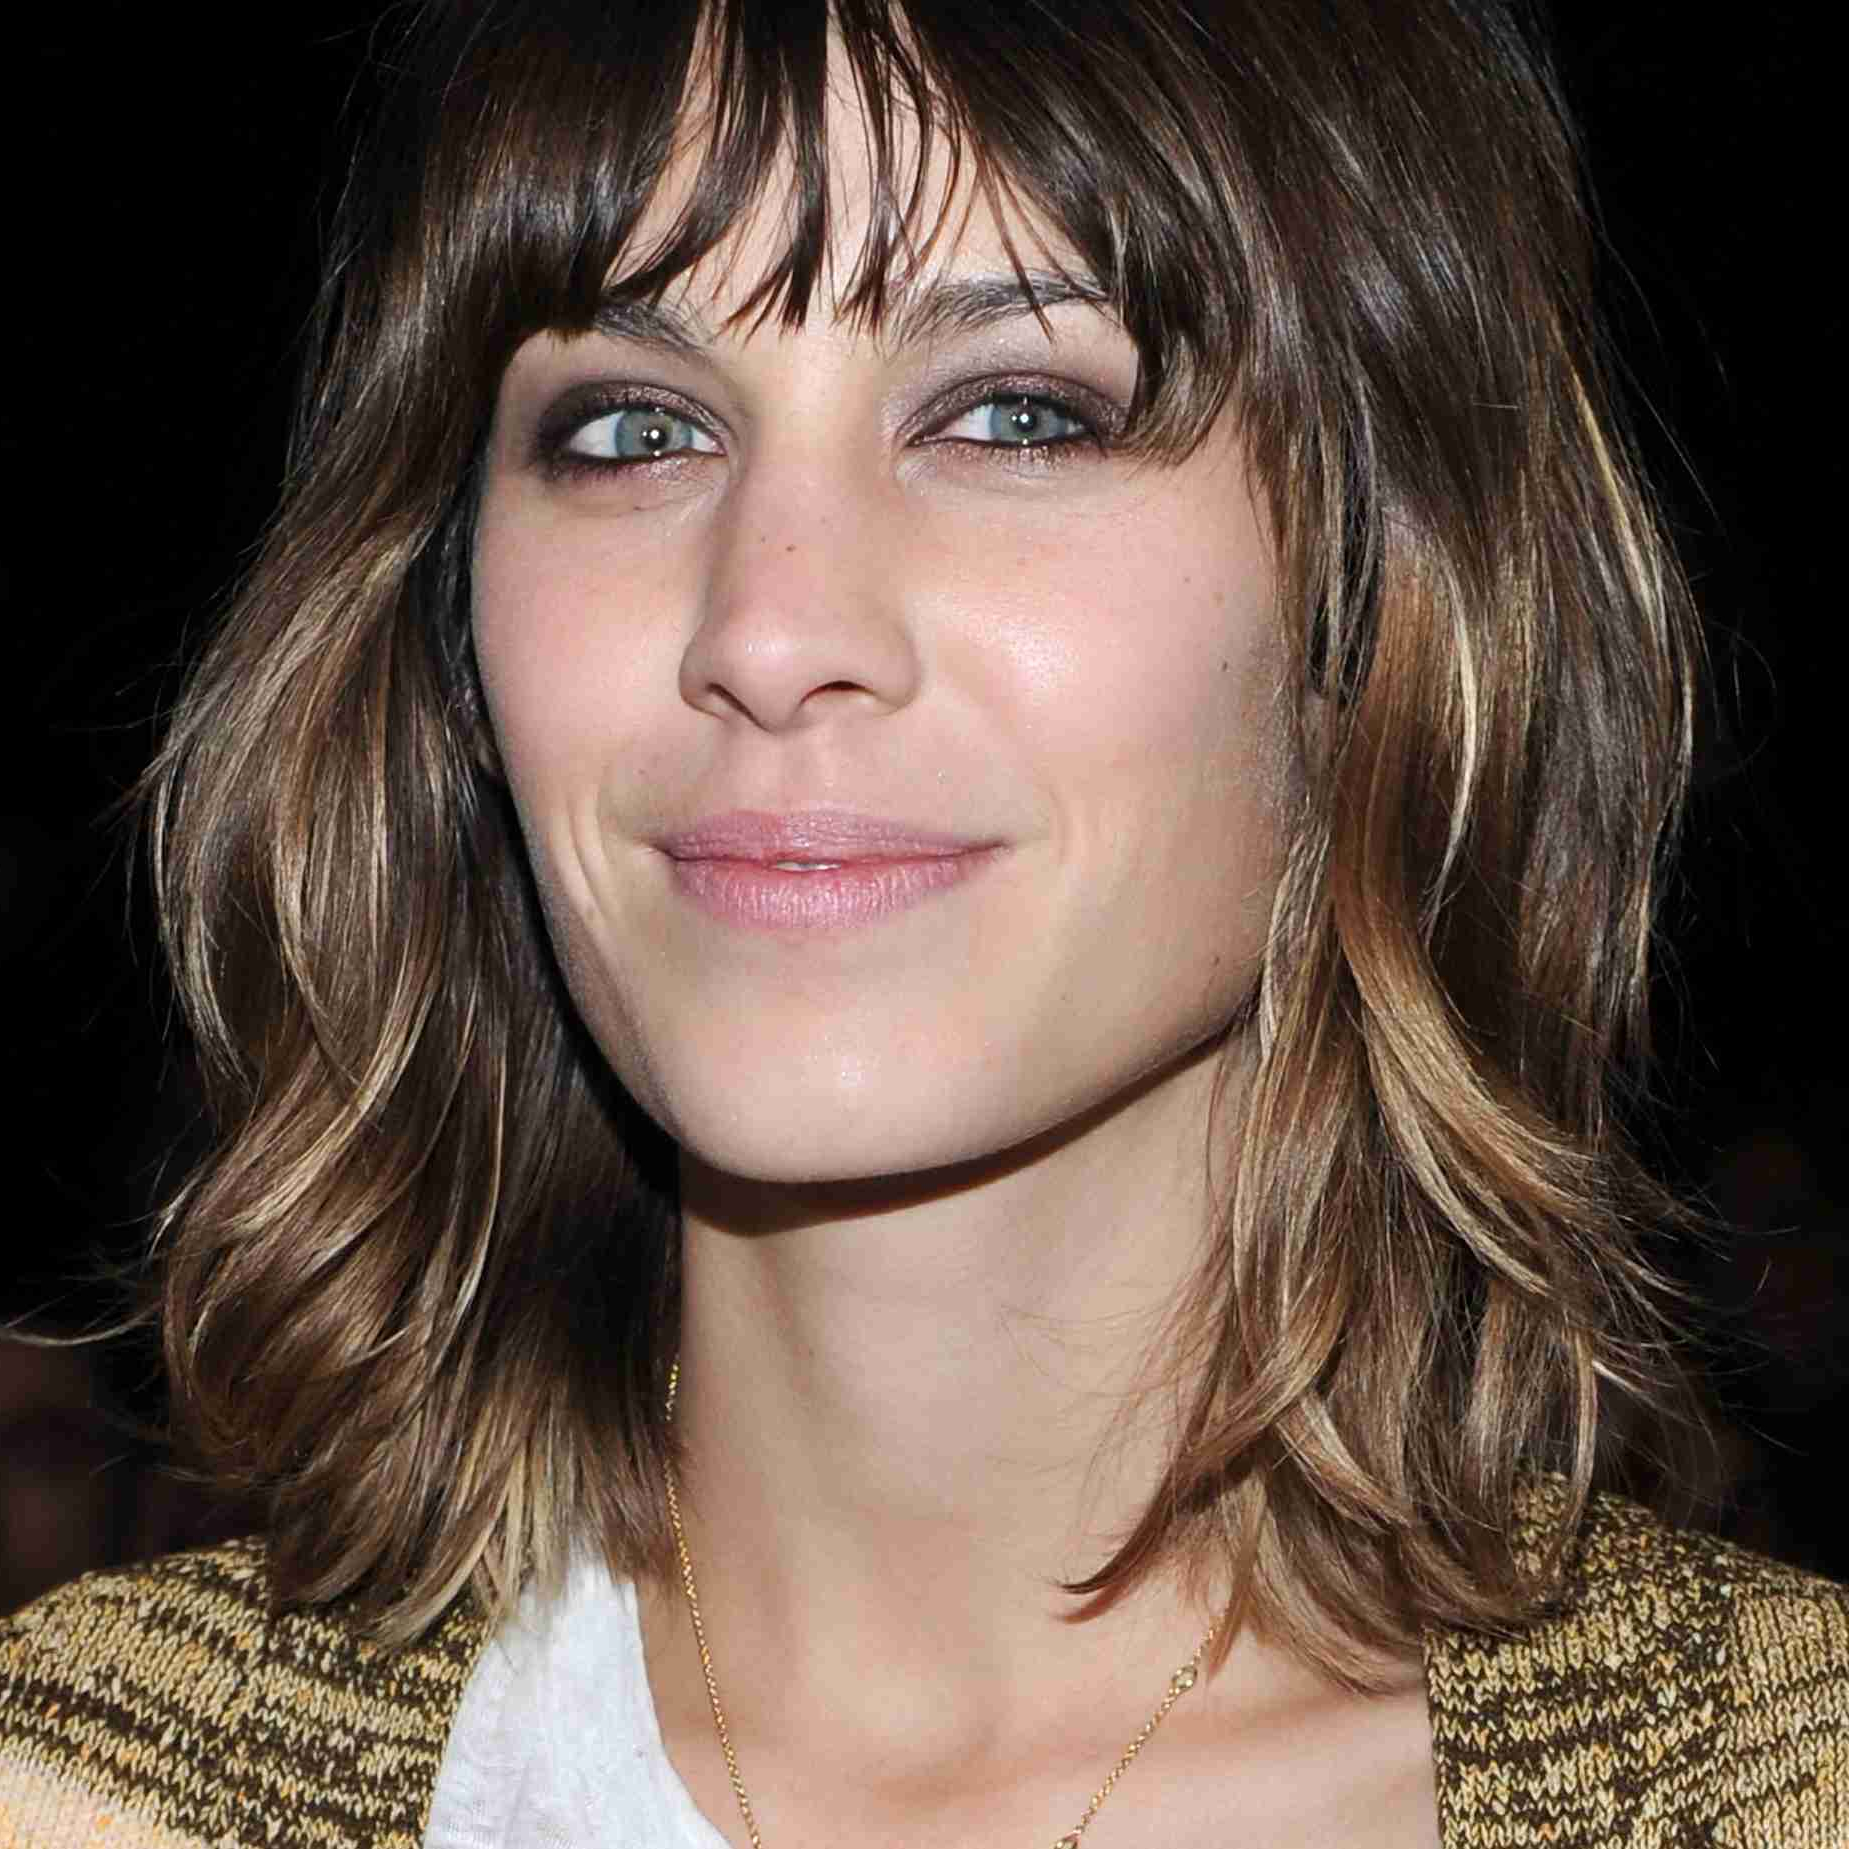 Can't Miss Shag Haircuts, From Short To Long Within Most Recent Choppy Shag Haircuts With Bangs (View 11 of 20)